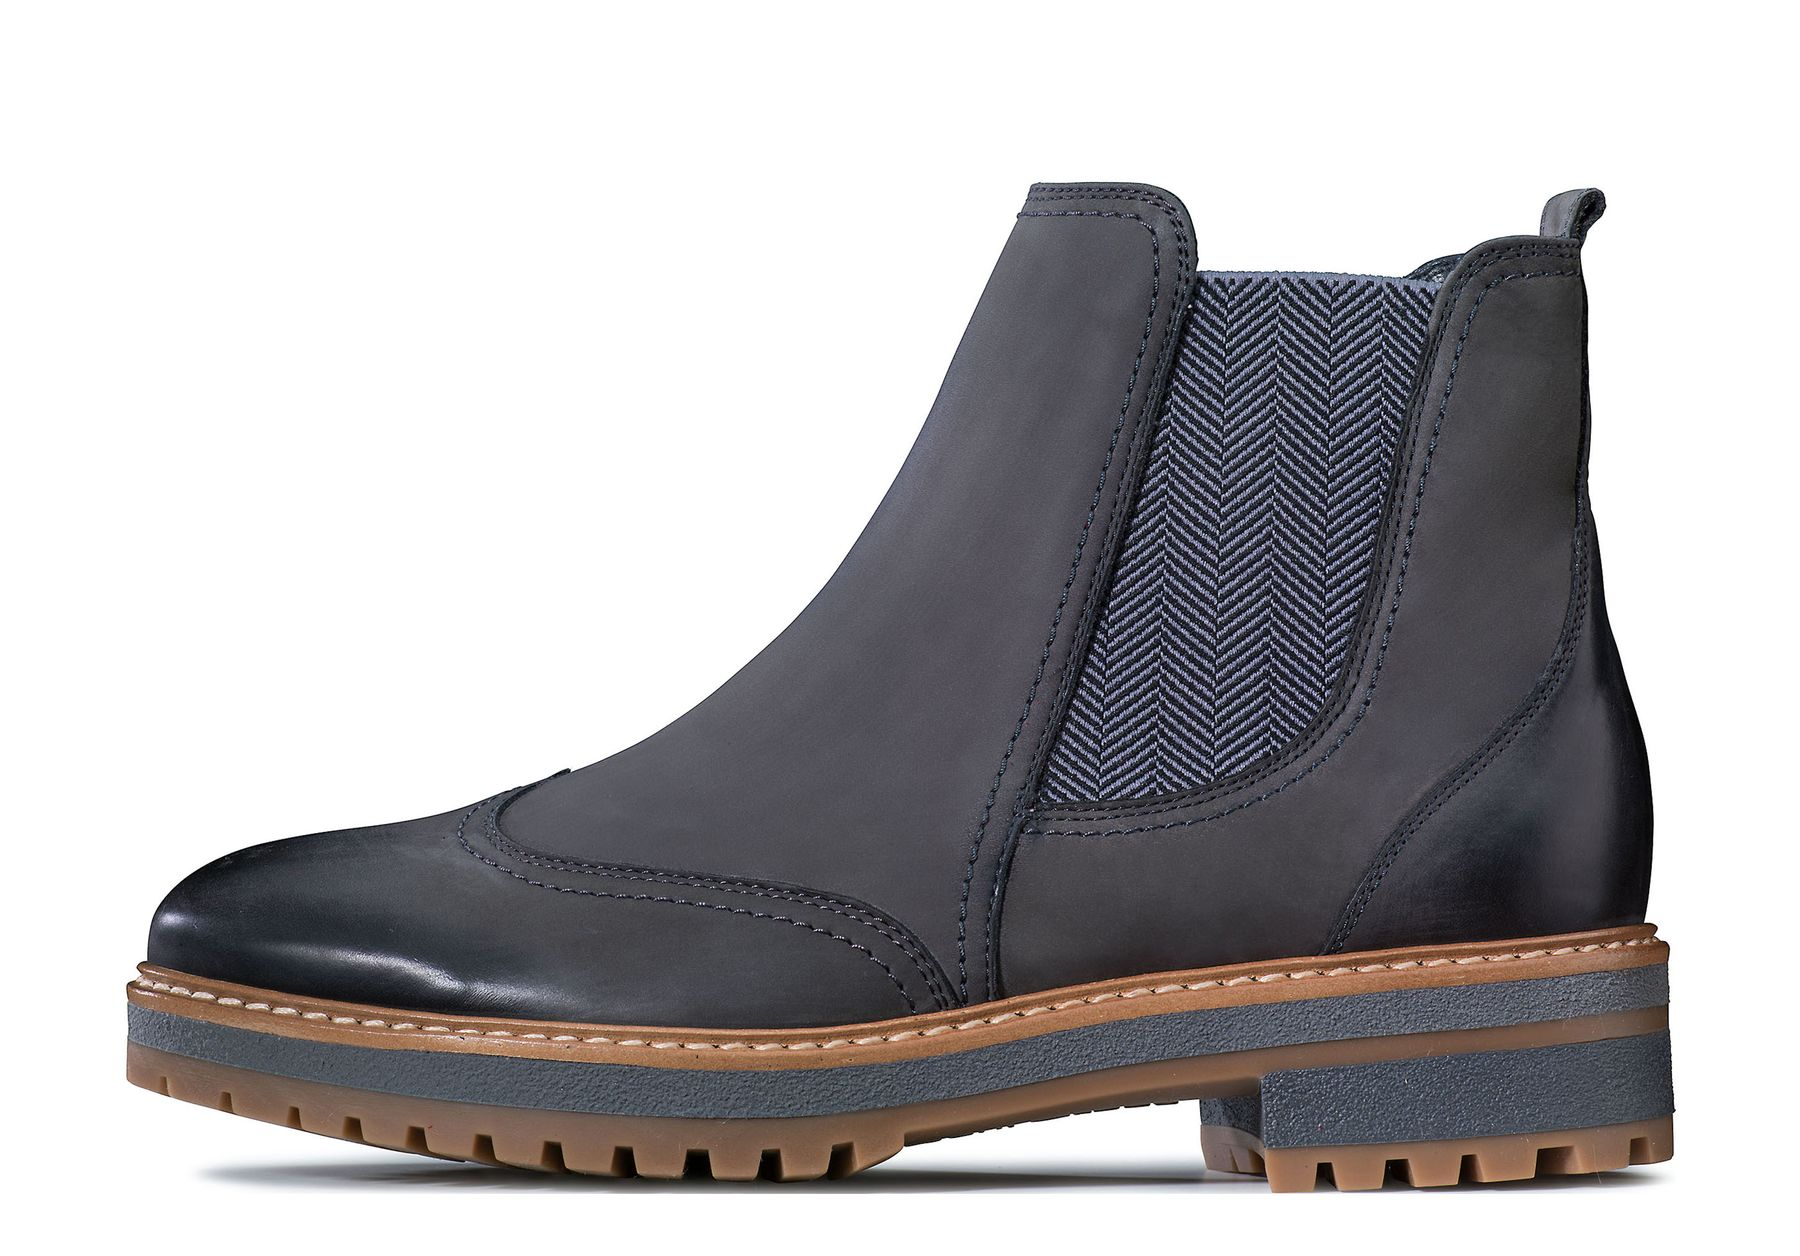 huge discount c1565 2e318 Manually crafted Chelsea Boots in gery - Paul Green